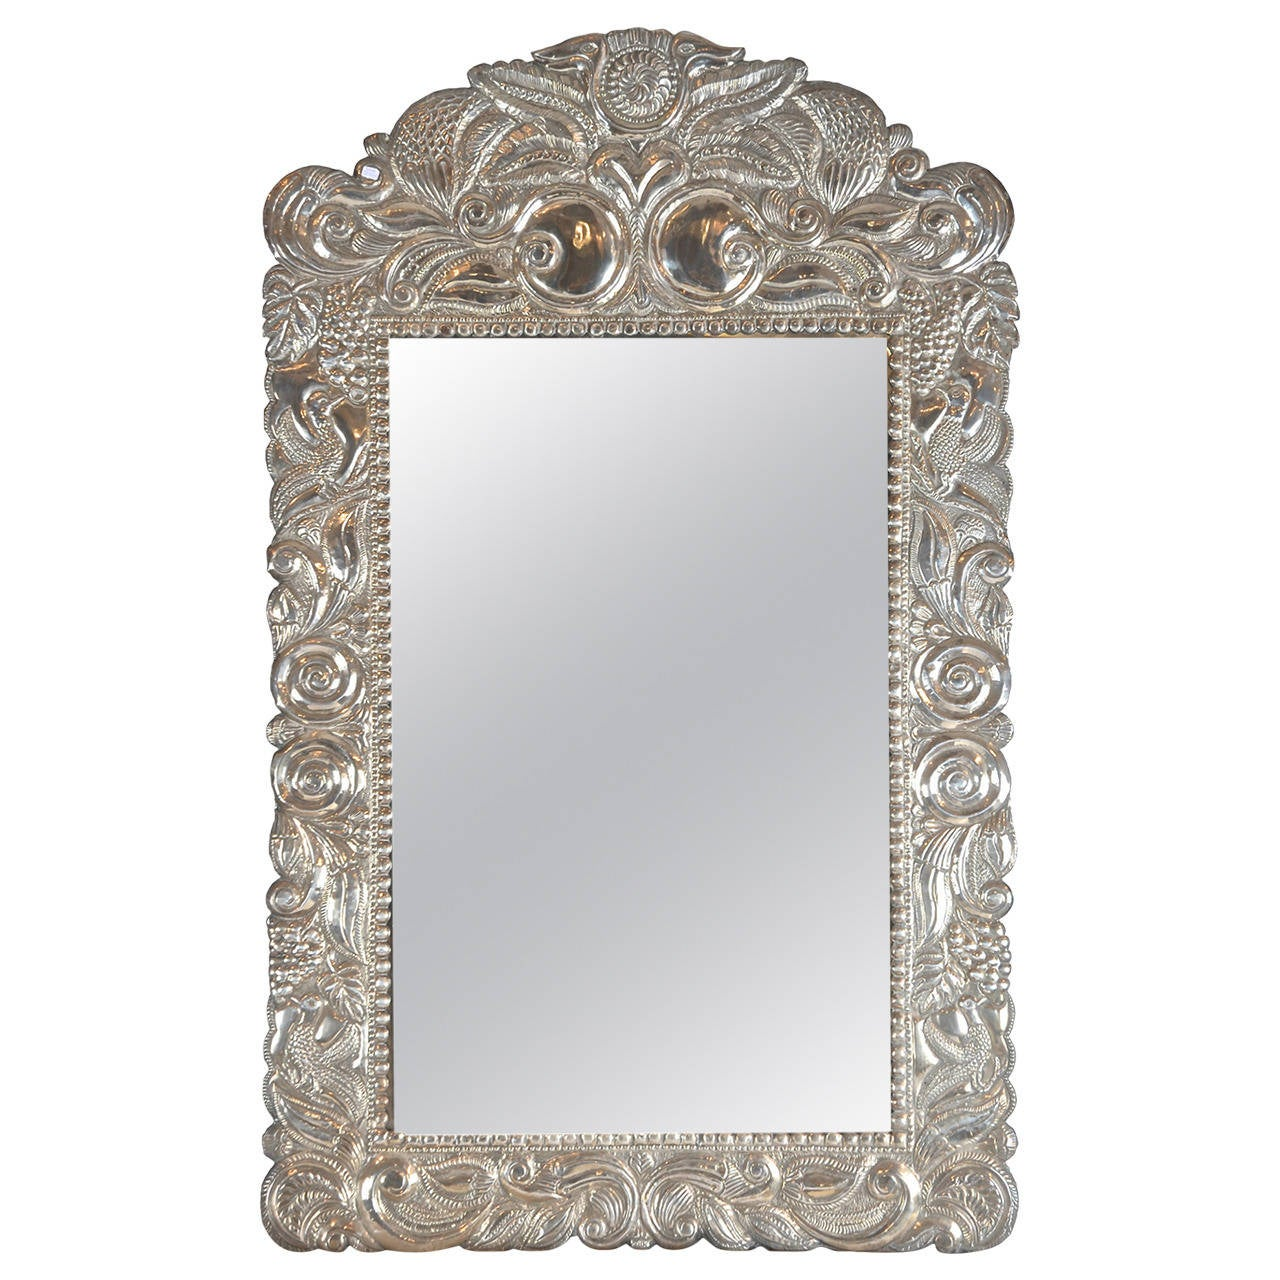 Mirror in silver frame south america 1920 1930 at 1stdibs for Silver framed mirror